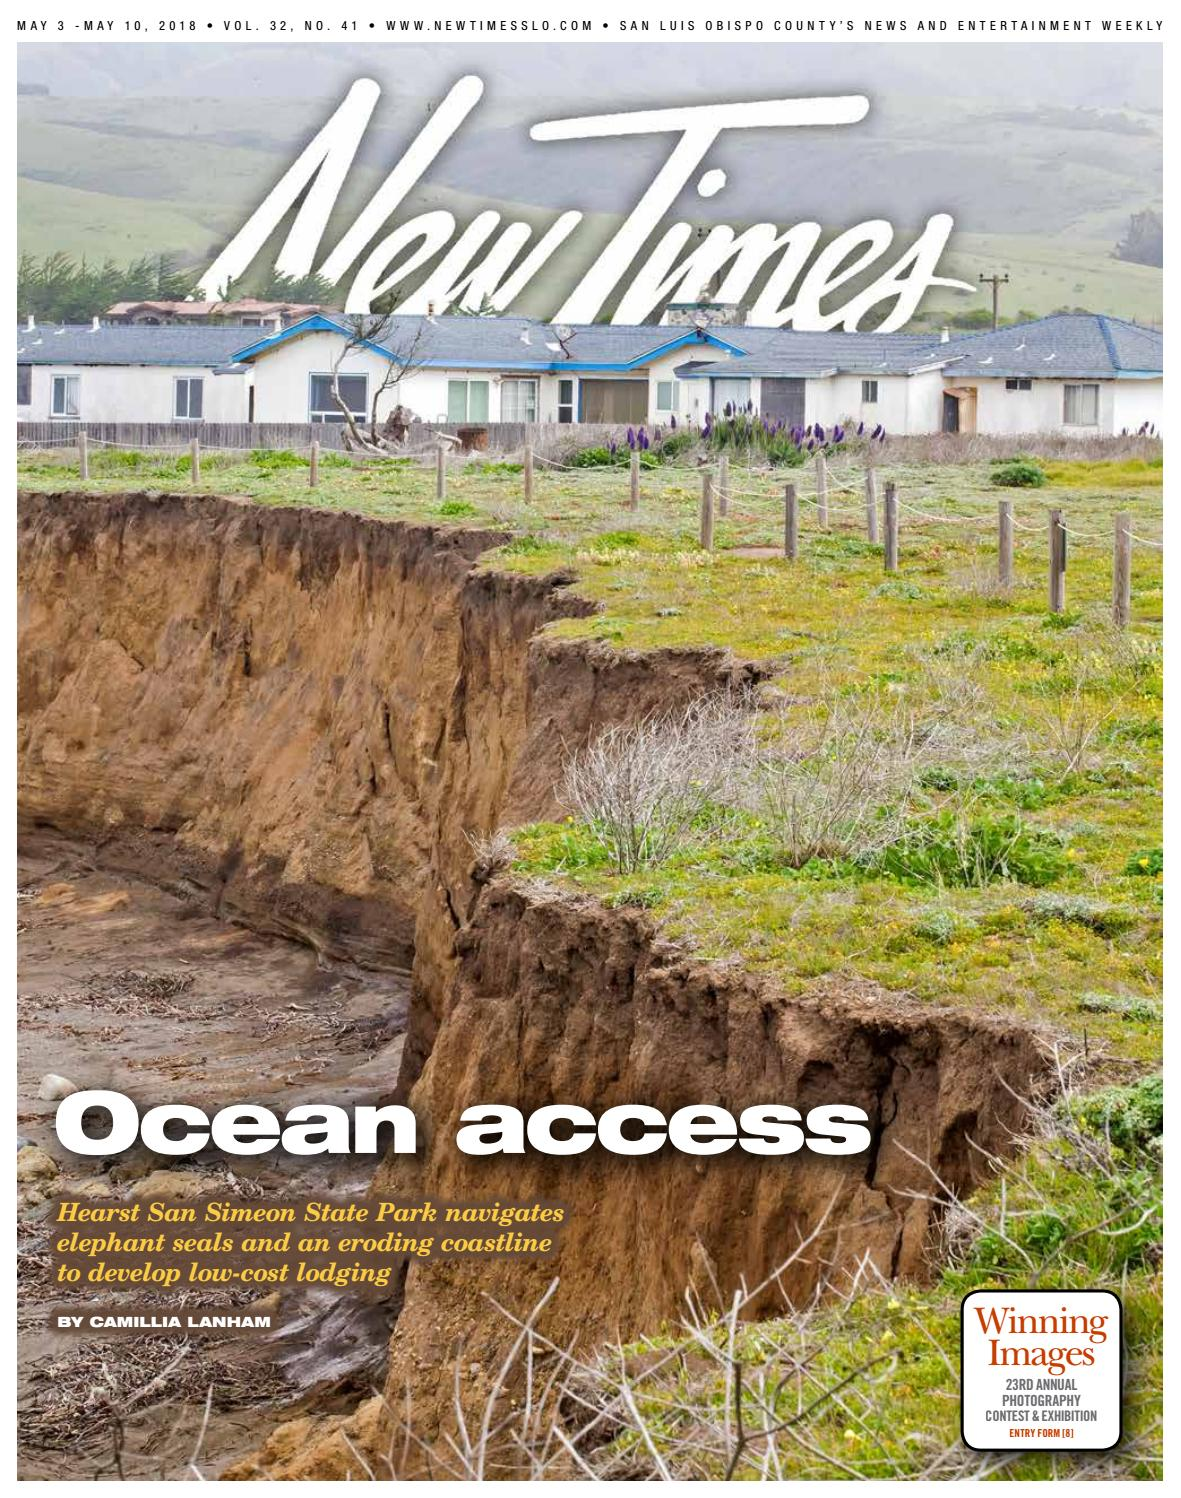 New Times, May 3, 2018 by New Times, San Luis Obispo - issuu